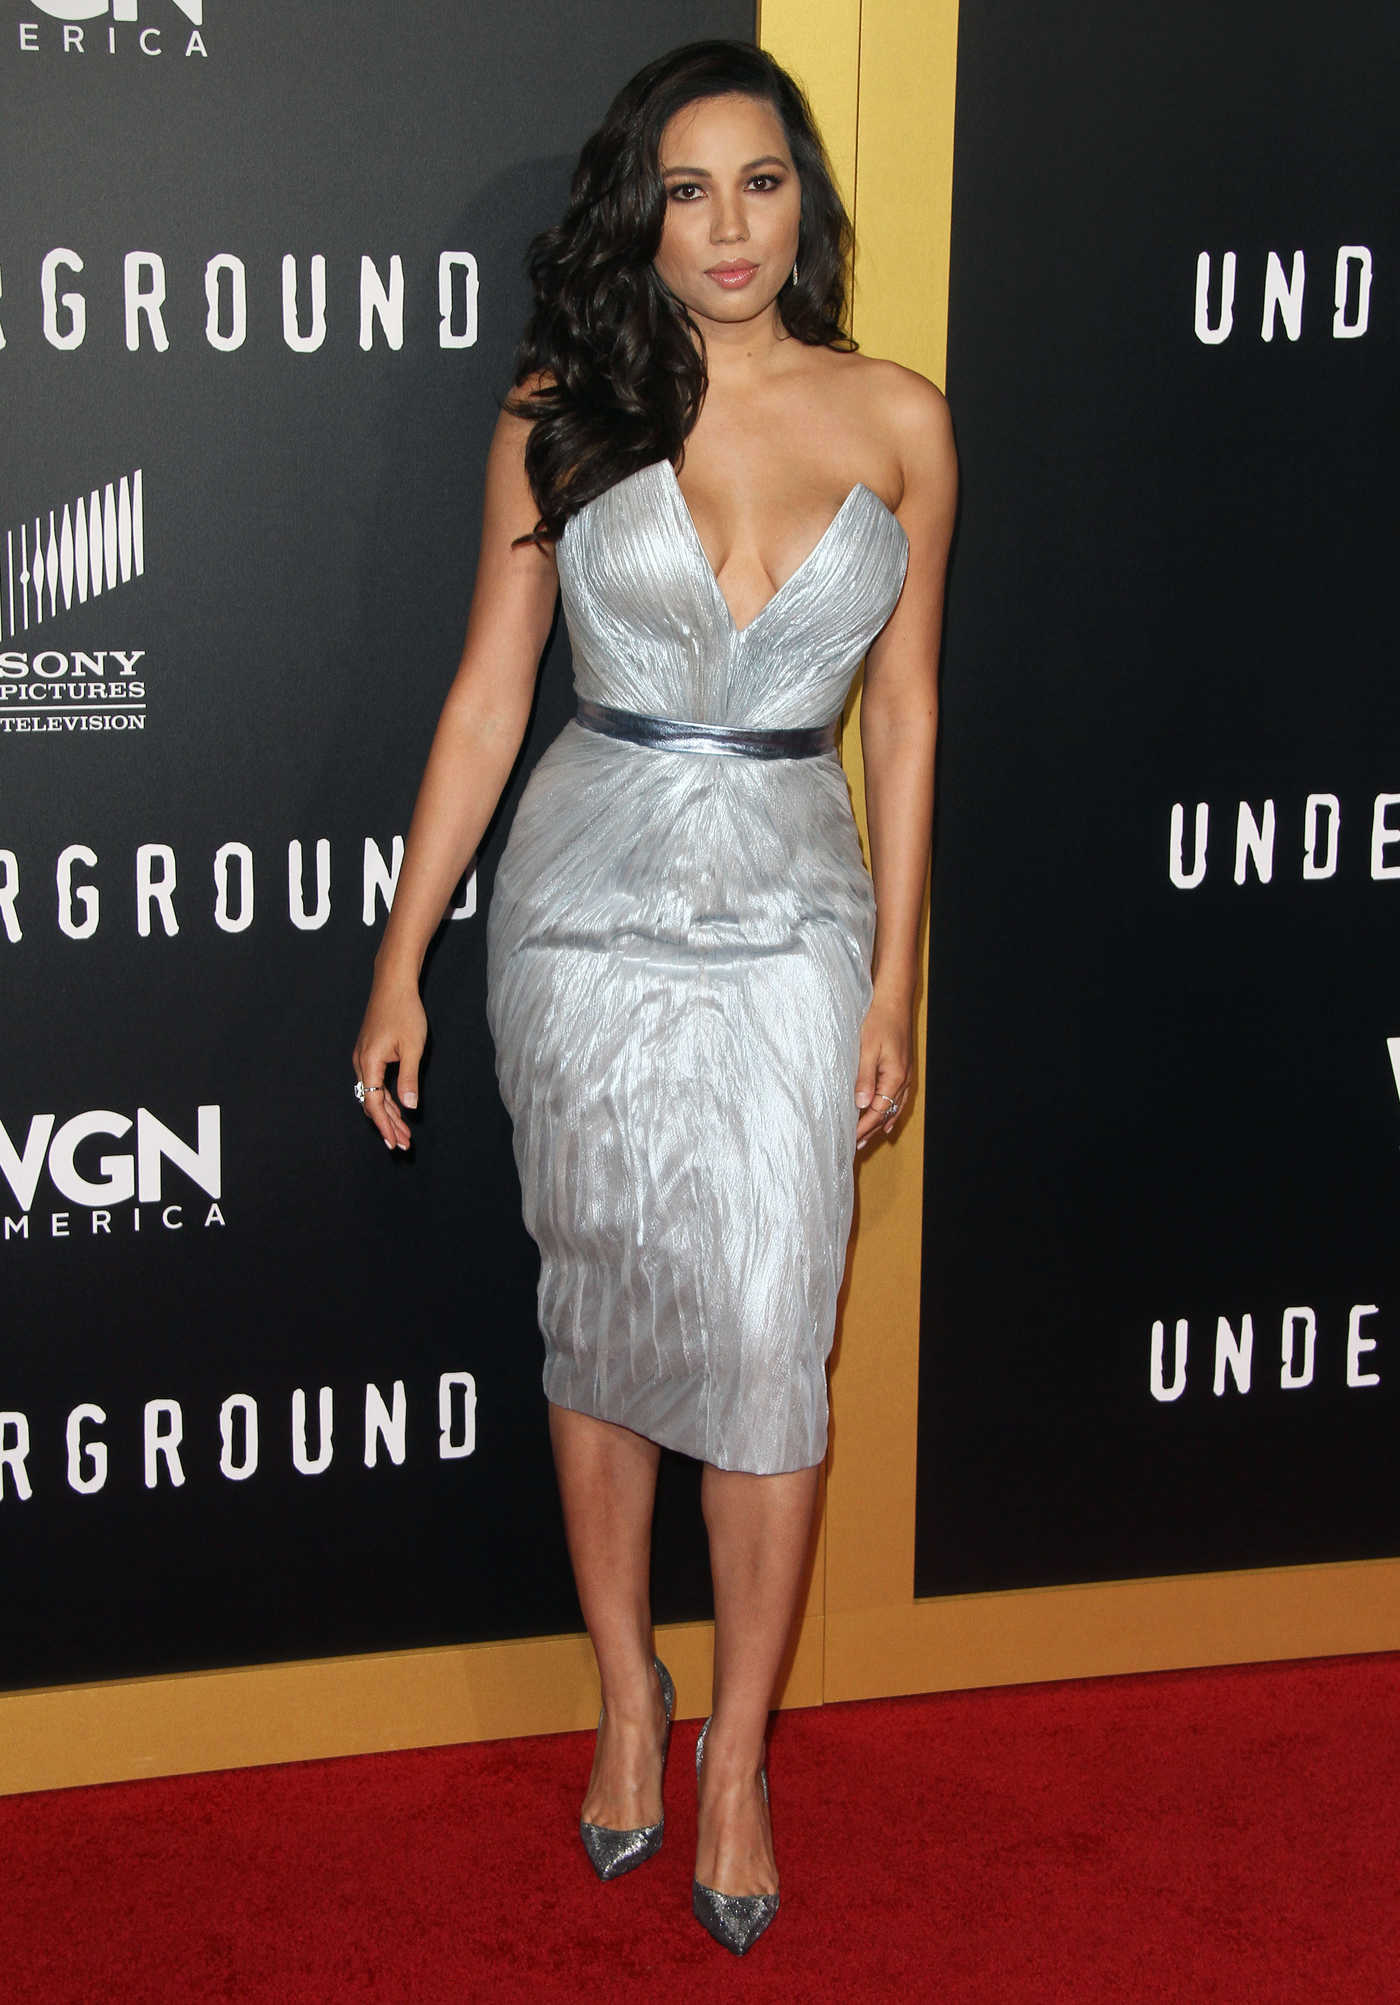 Jurnee Smollett-Bell at Underground TV Series Season 2 Premiere in Los Angeles 02/28/2017